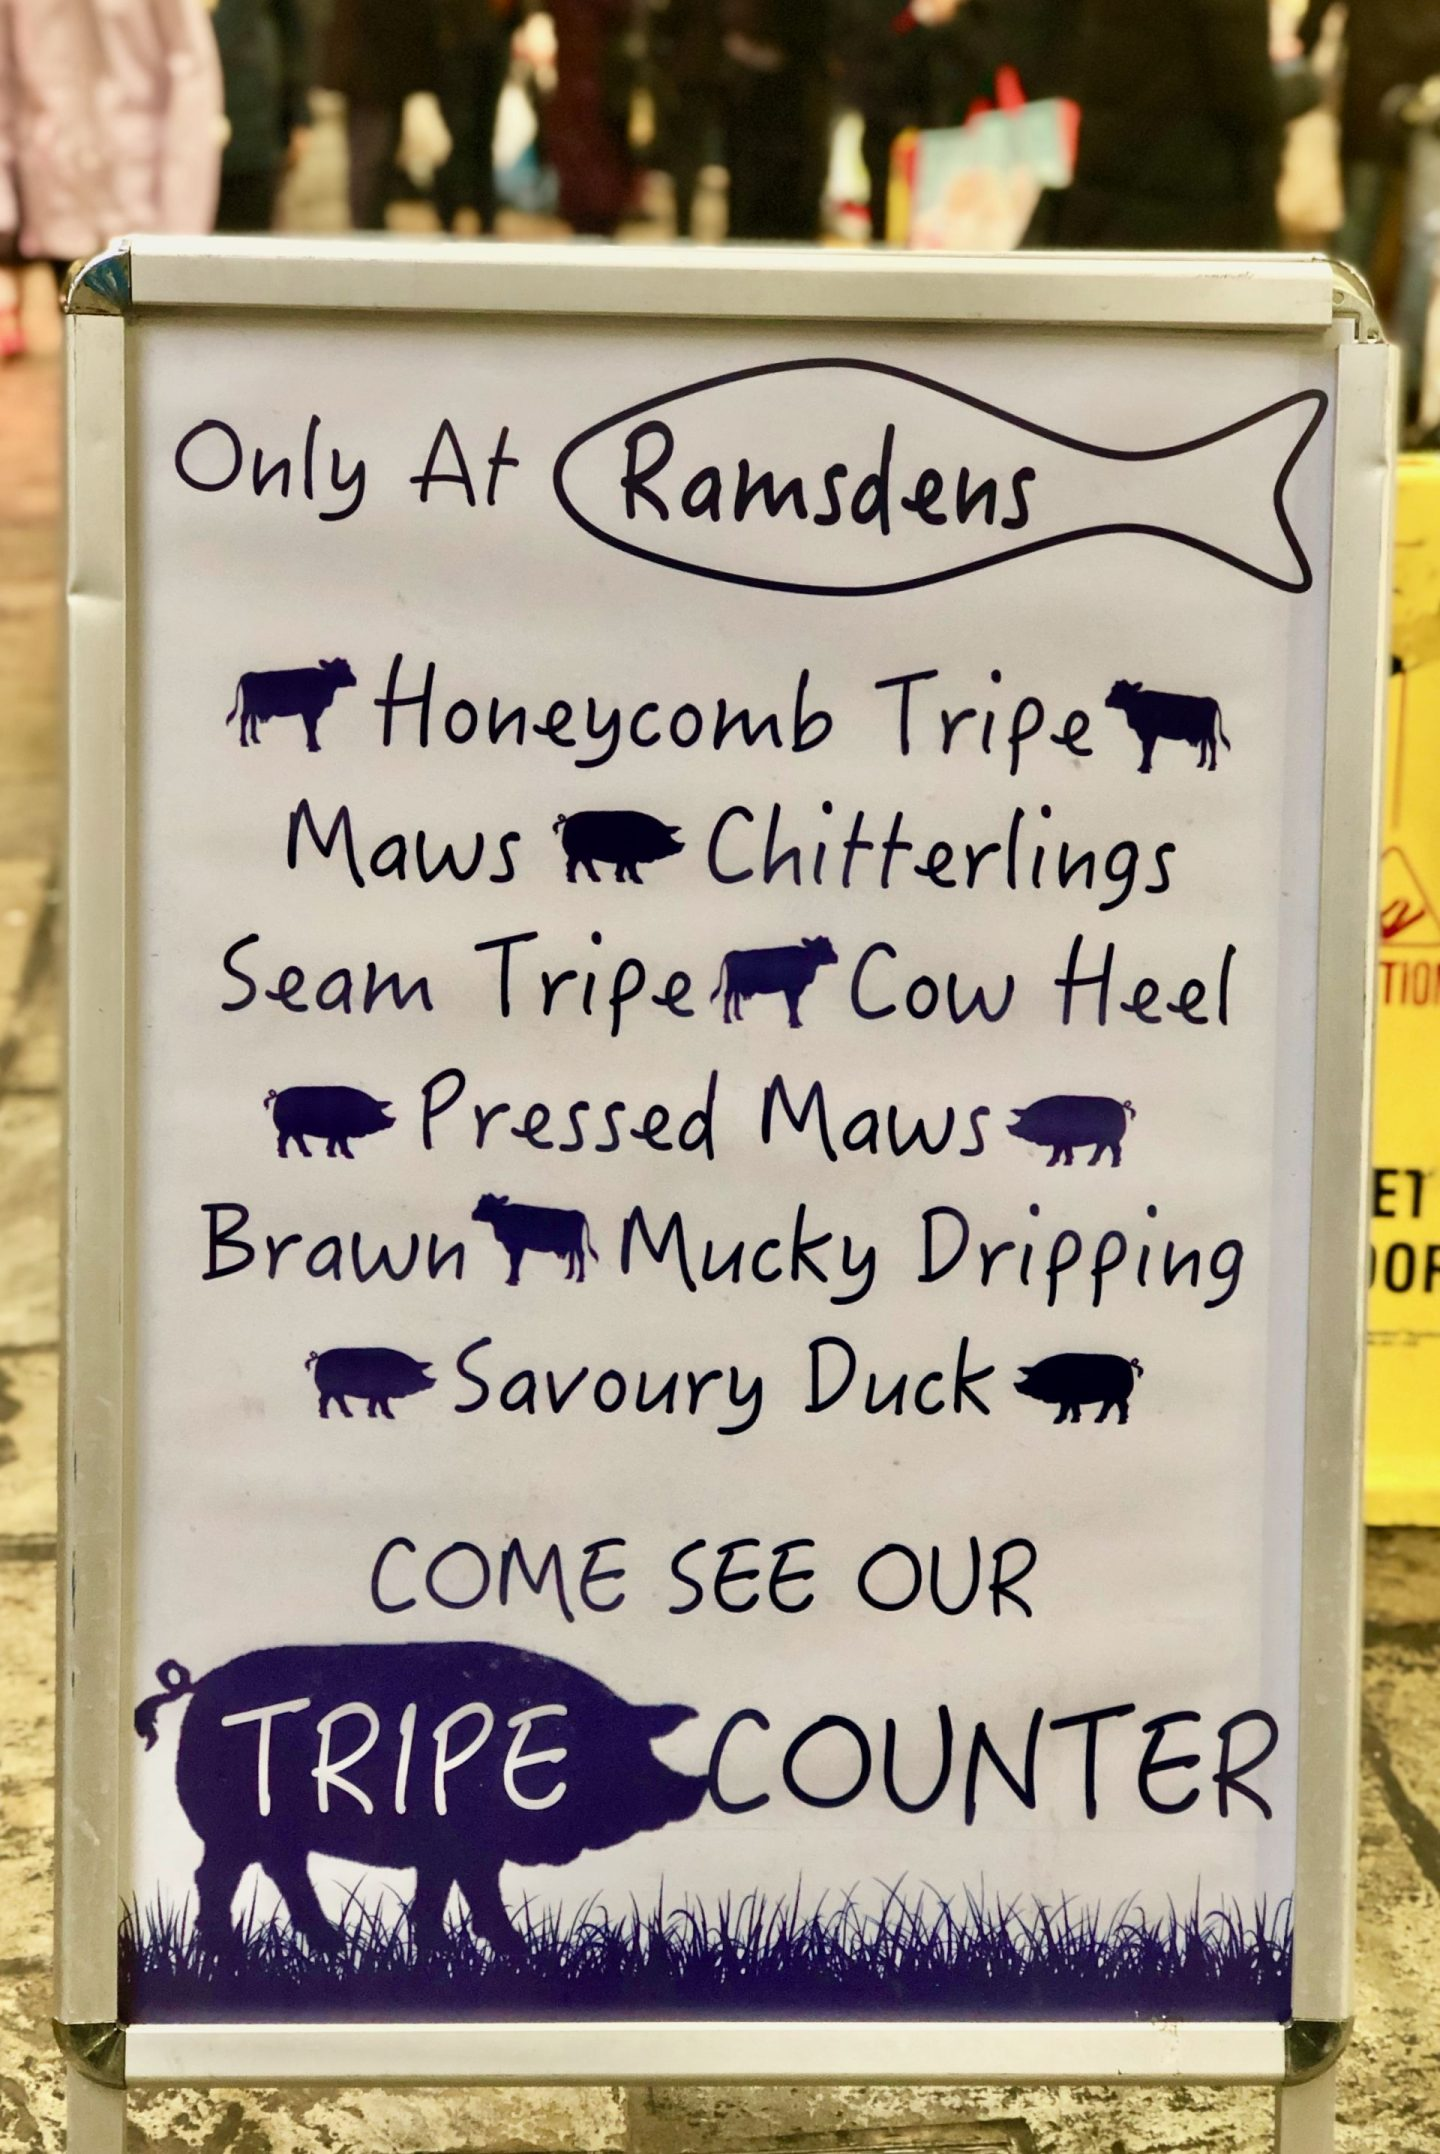 A sign for Ramsdens in Leeds Kirkgate Market displaying unusual products such as tripe, chitterlings and savoury duck